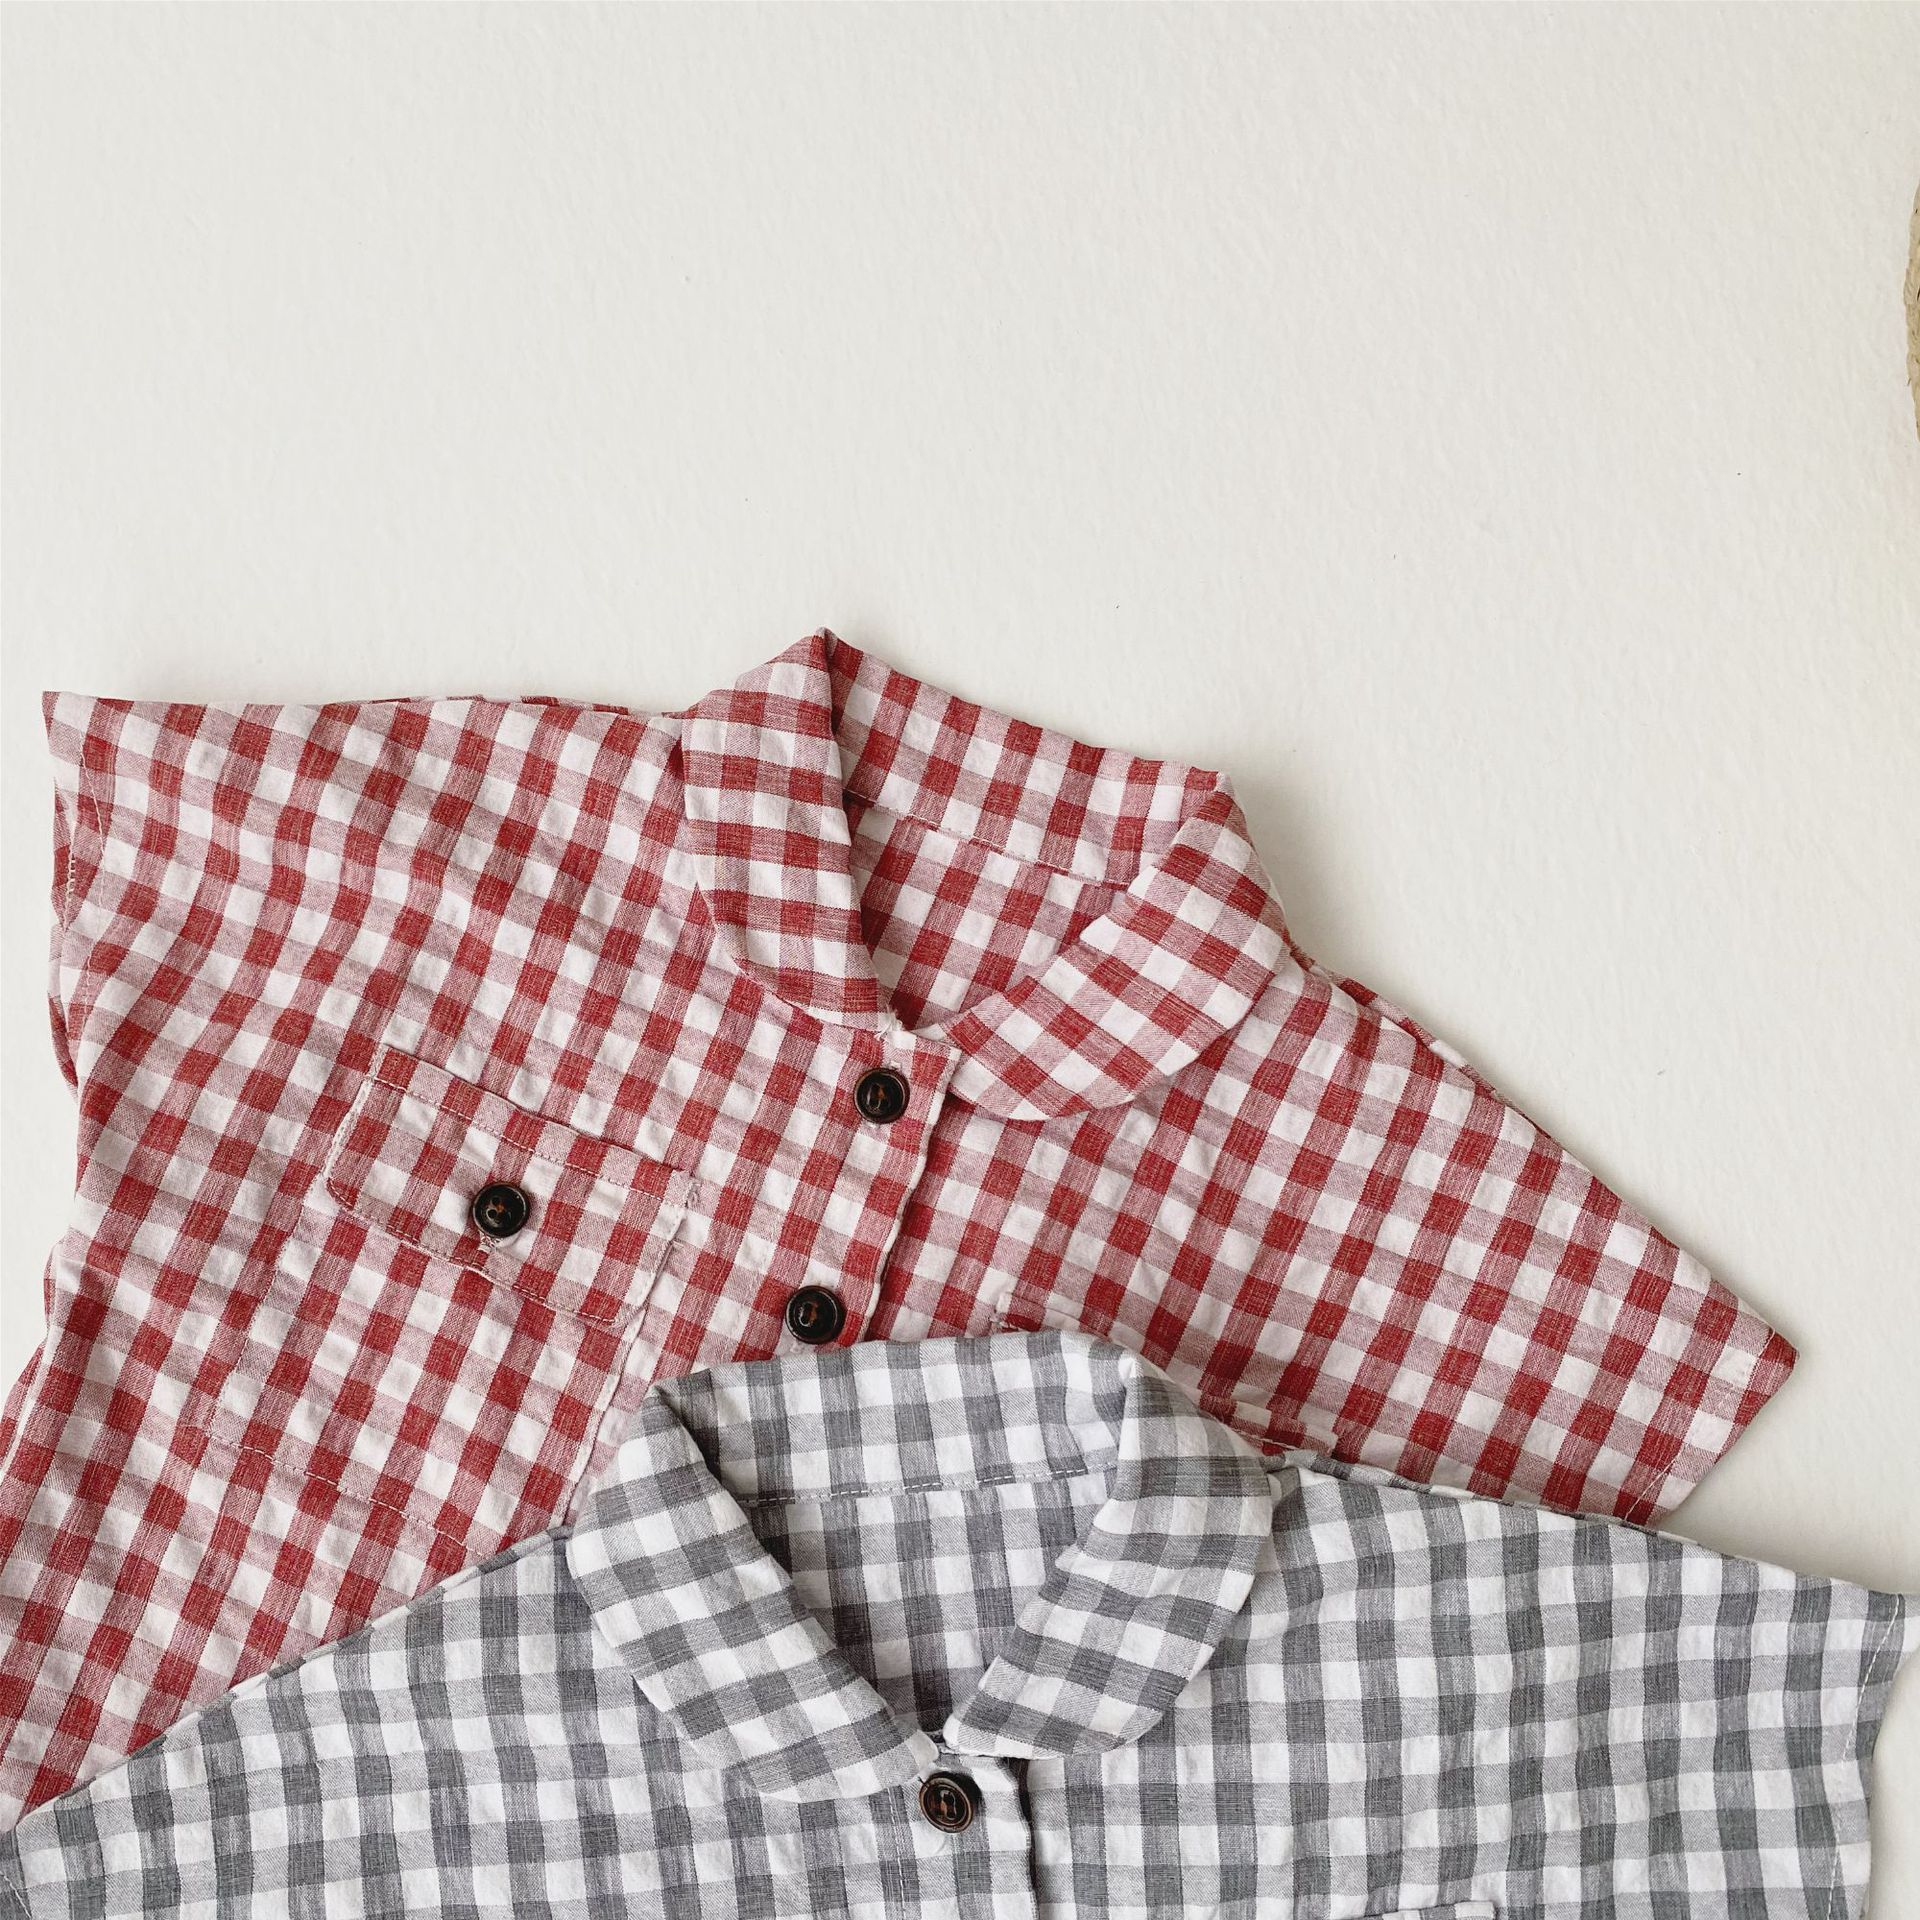 MILANCEL baby clothing set summer baby boys clothes plaid tee and pumpkin short baby boys outfit